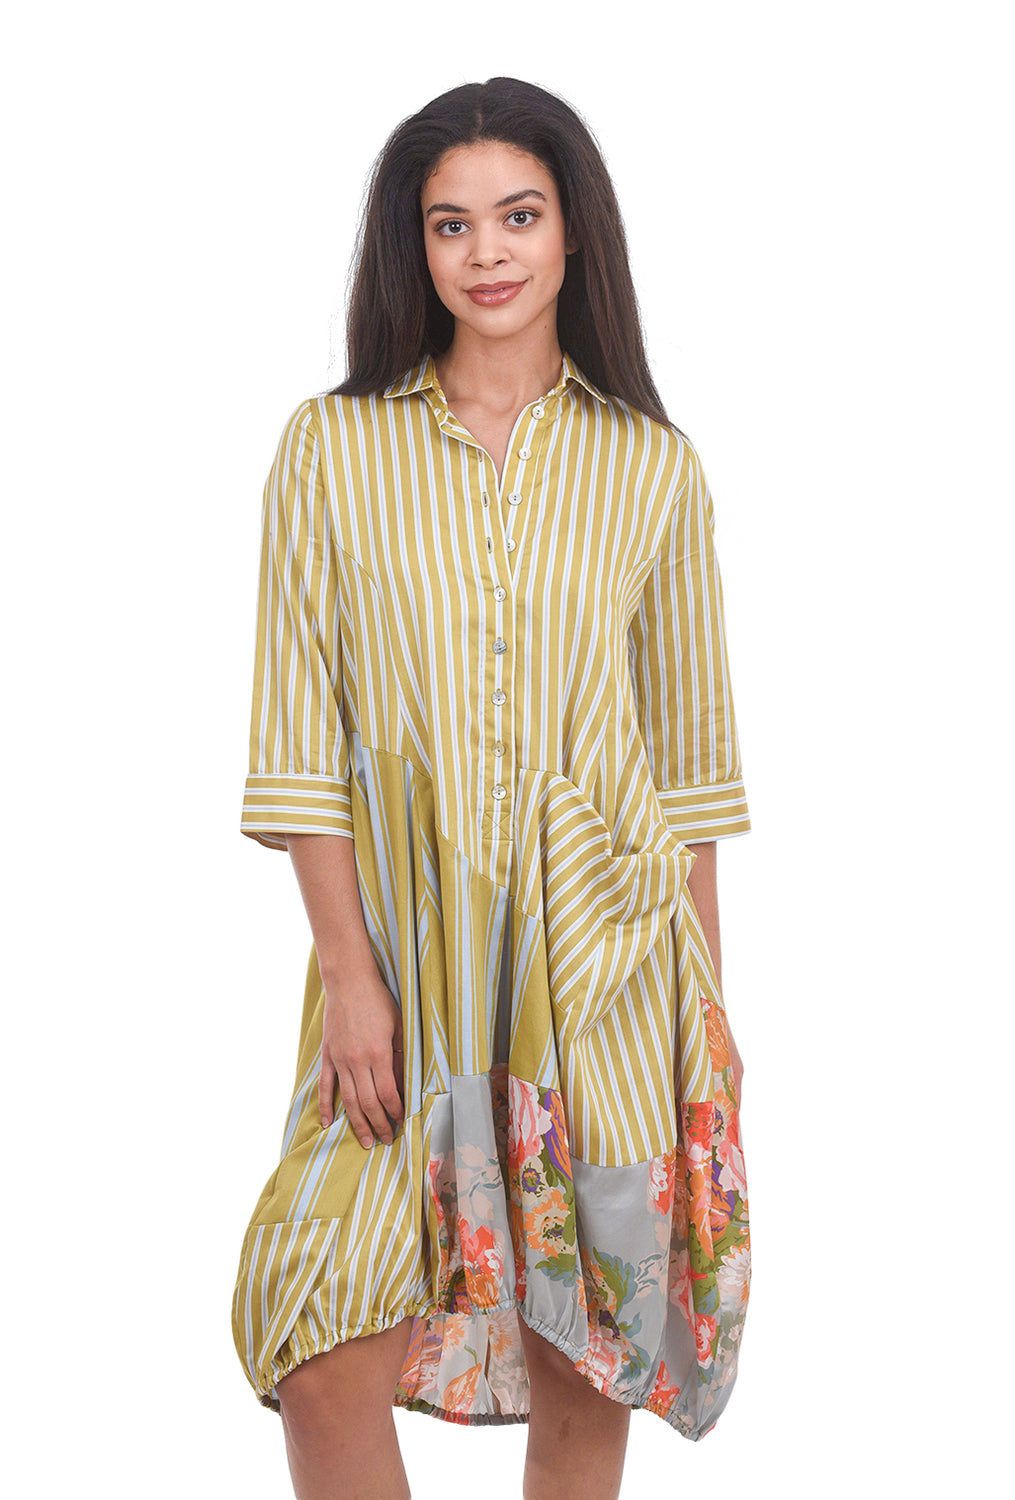 Alembika Floral & Stripes Shirtdress, Amber Yellow